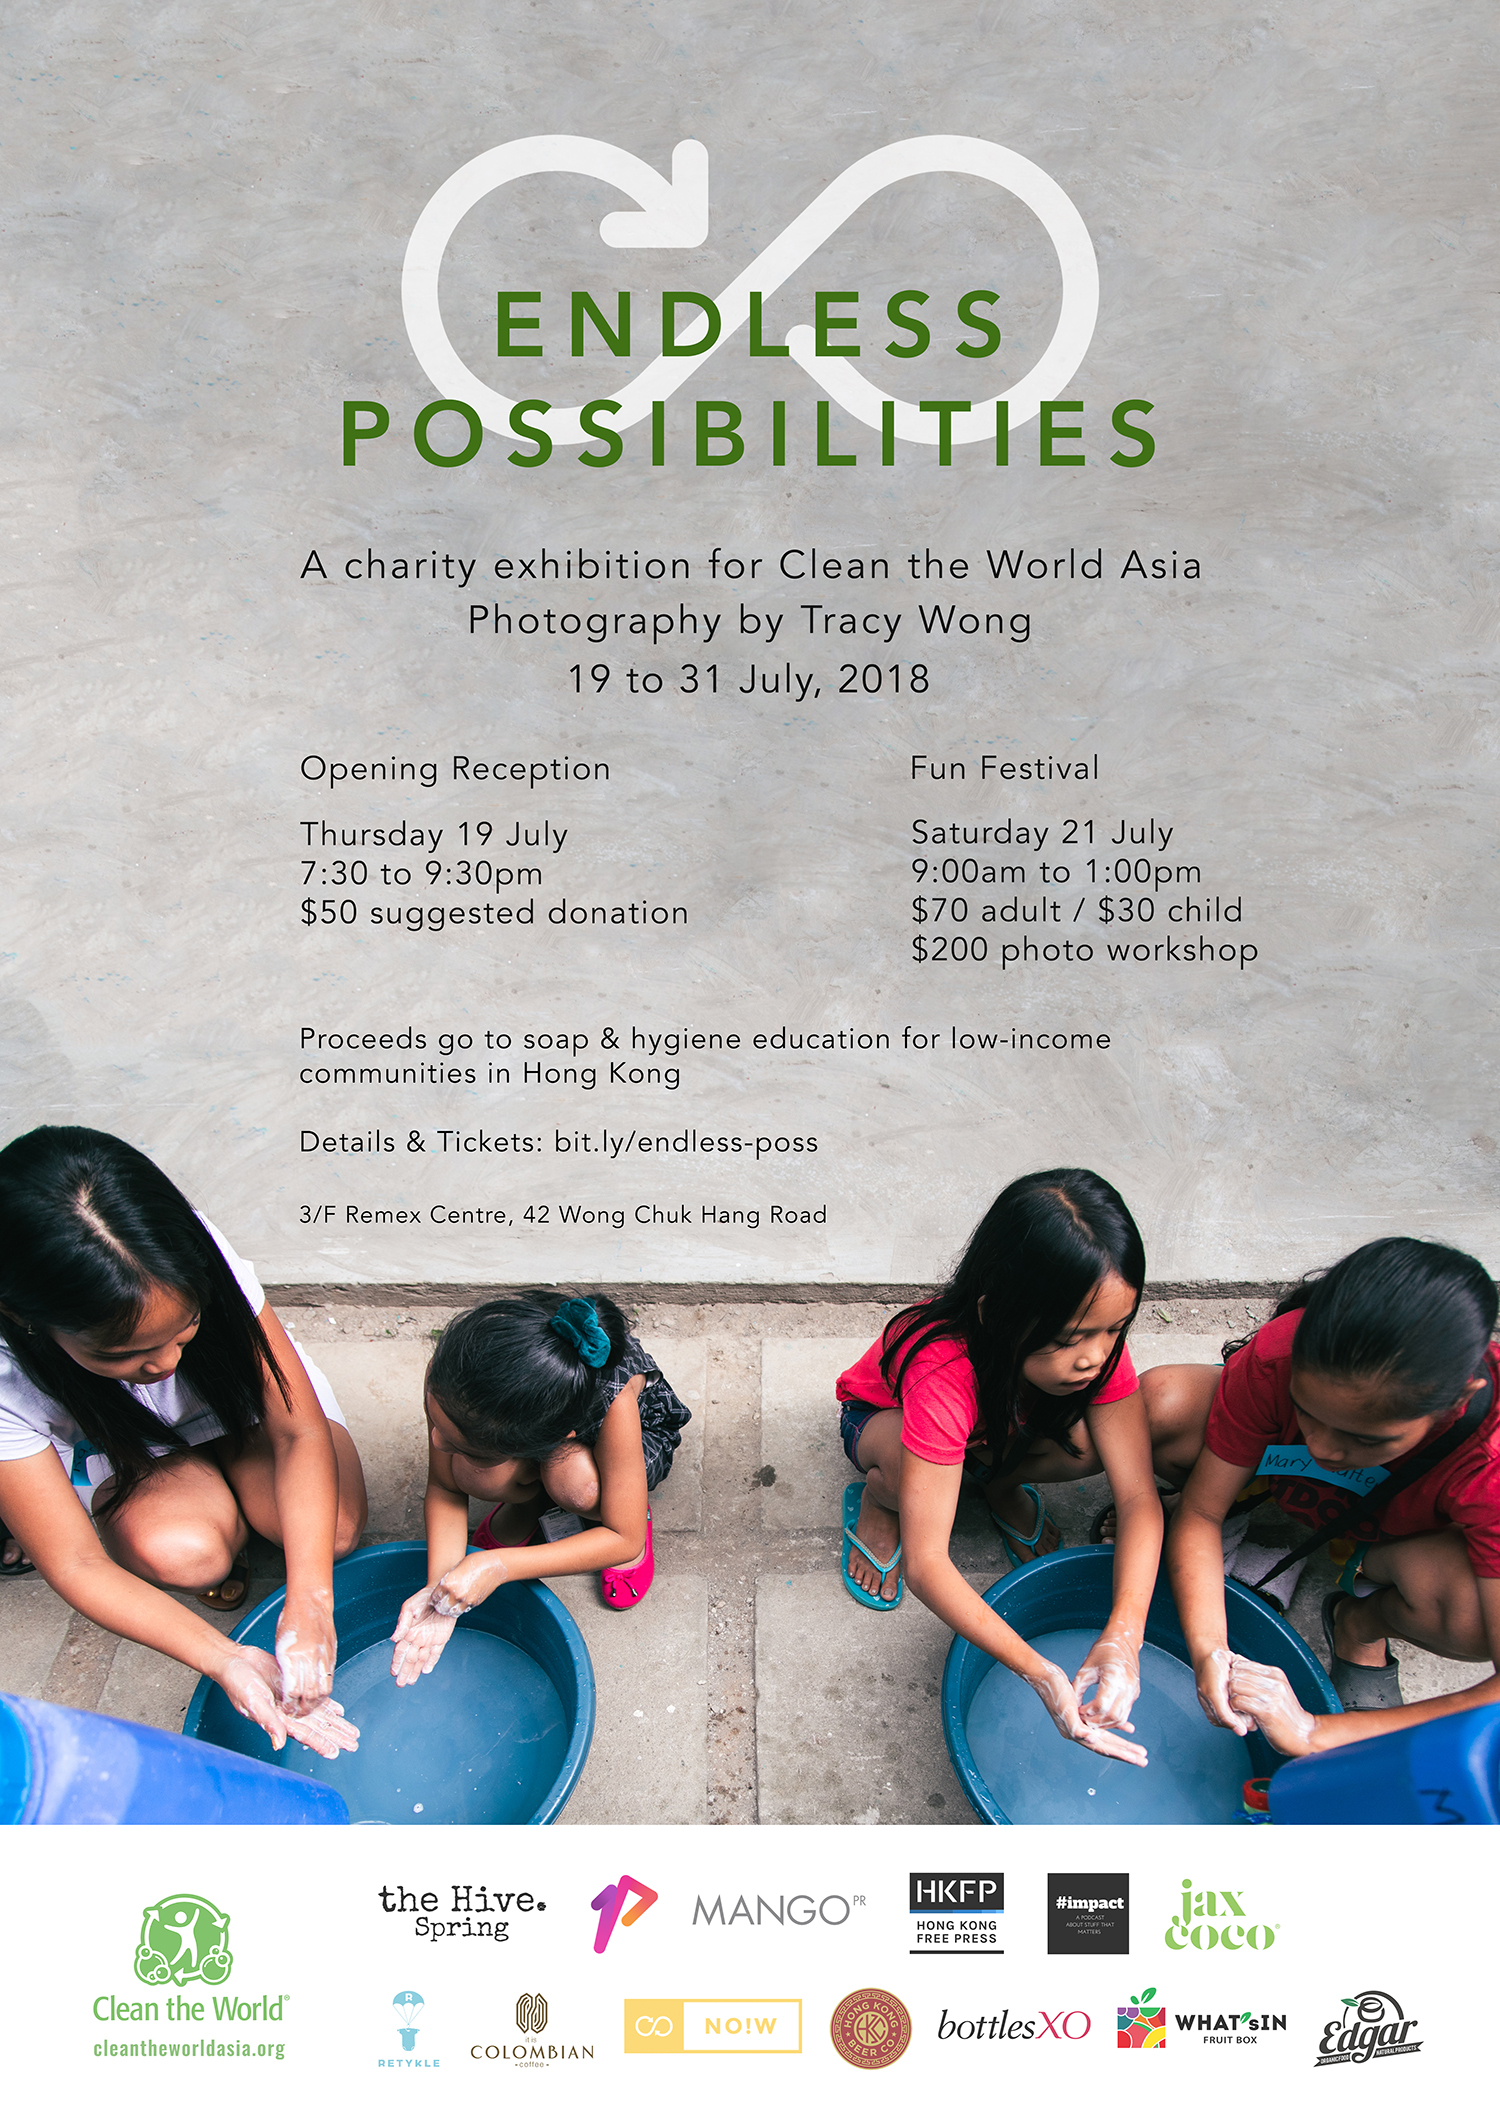 Endless Possibilities: A charity photography exhibition in Hong Kong with Clean the World Asia and photographer Tracy Wong